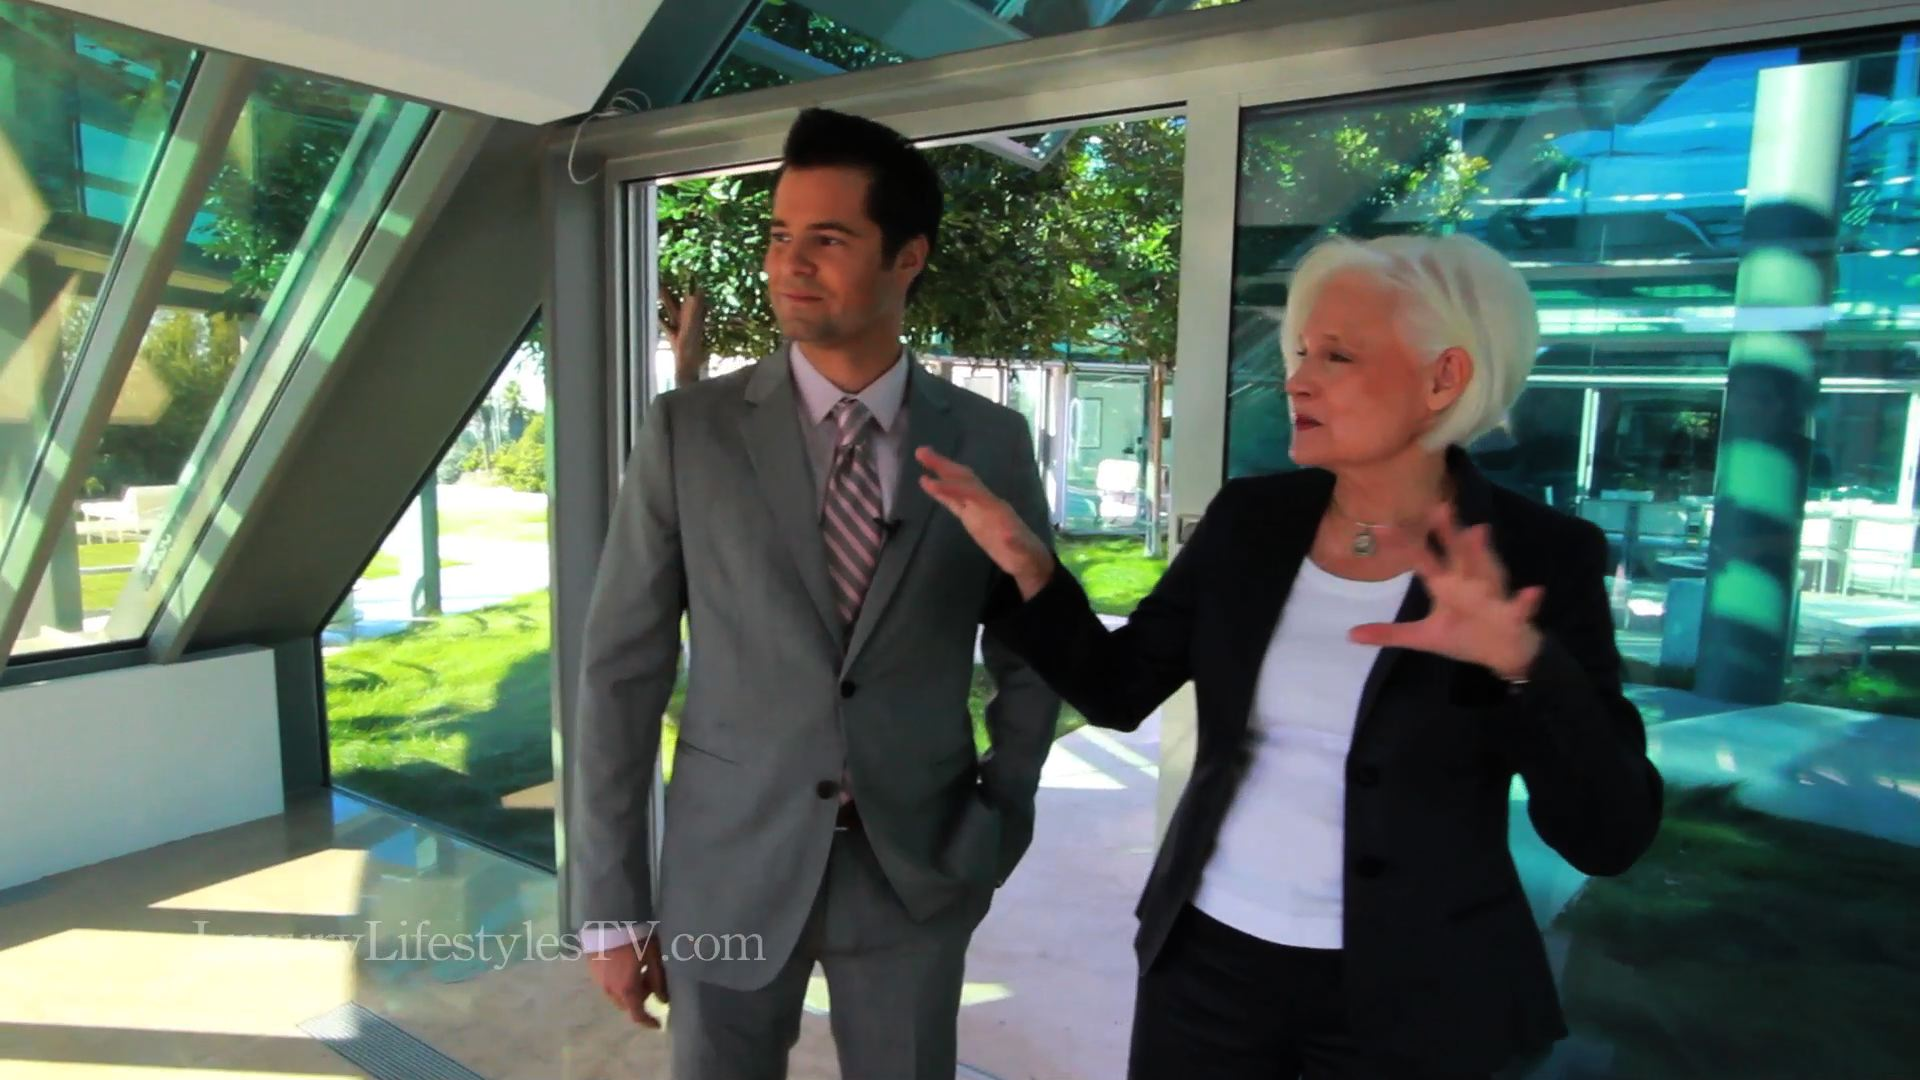 New Series 'Luxury Lifestyles' Features Southern California Dream Homes